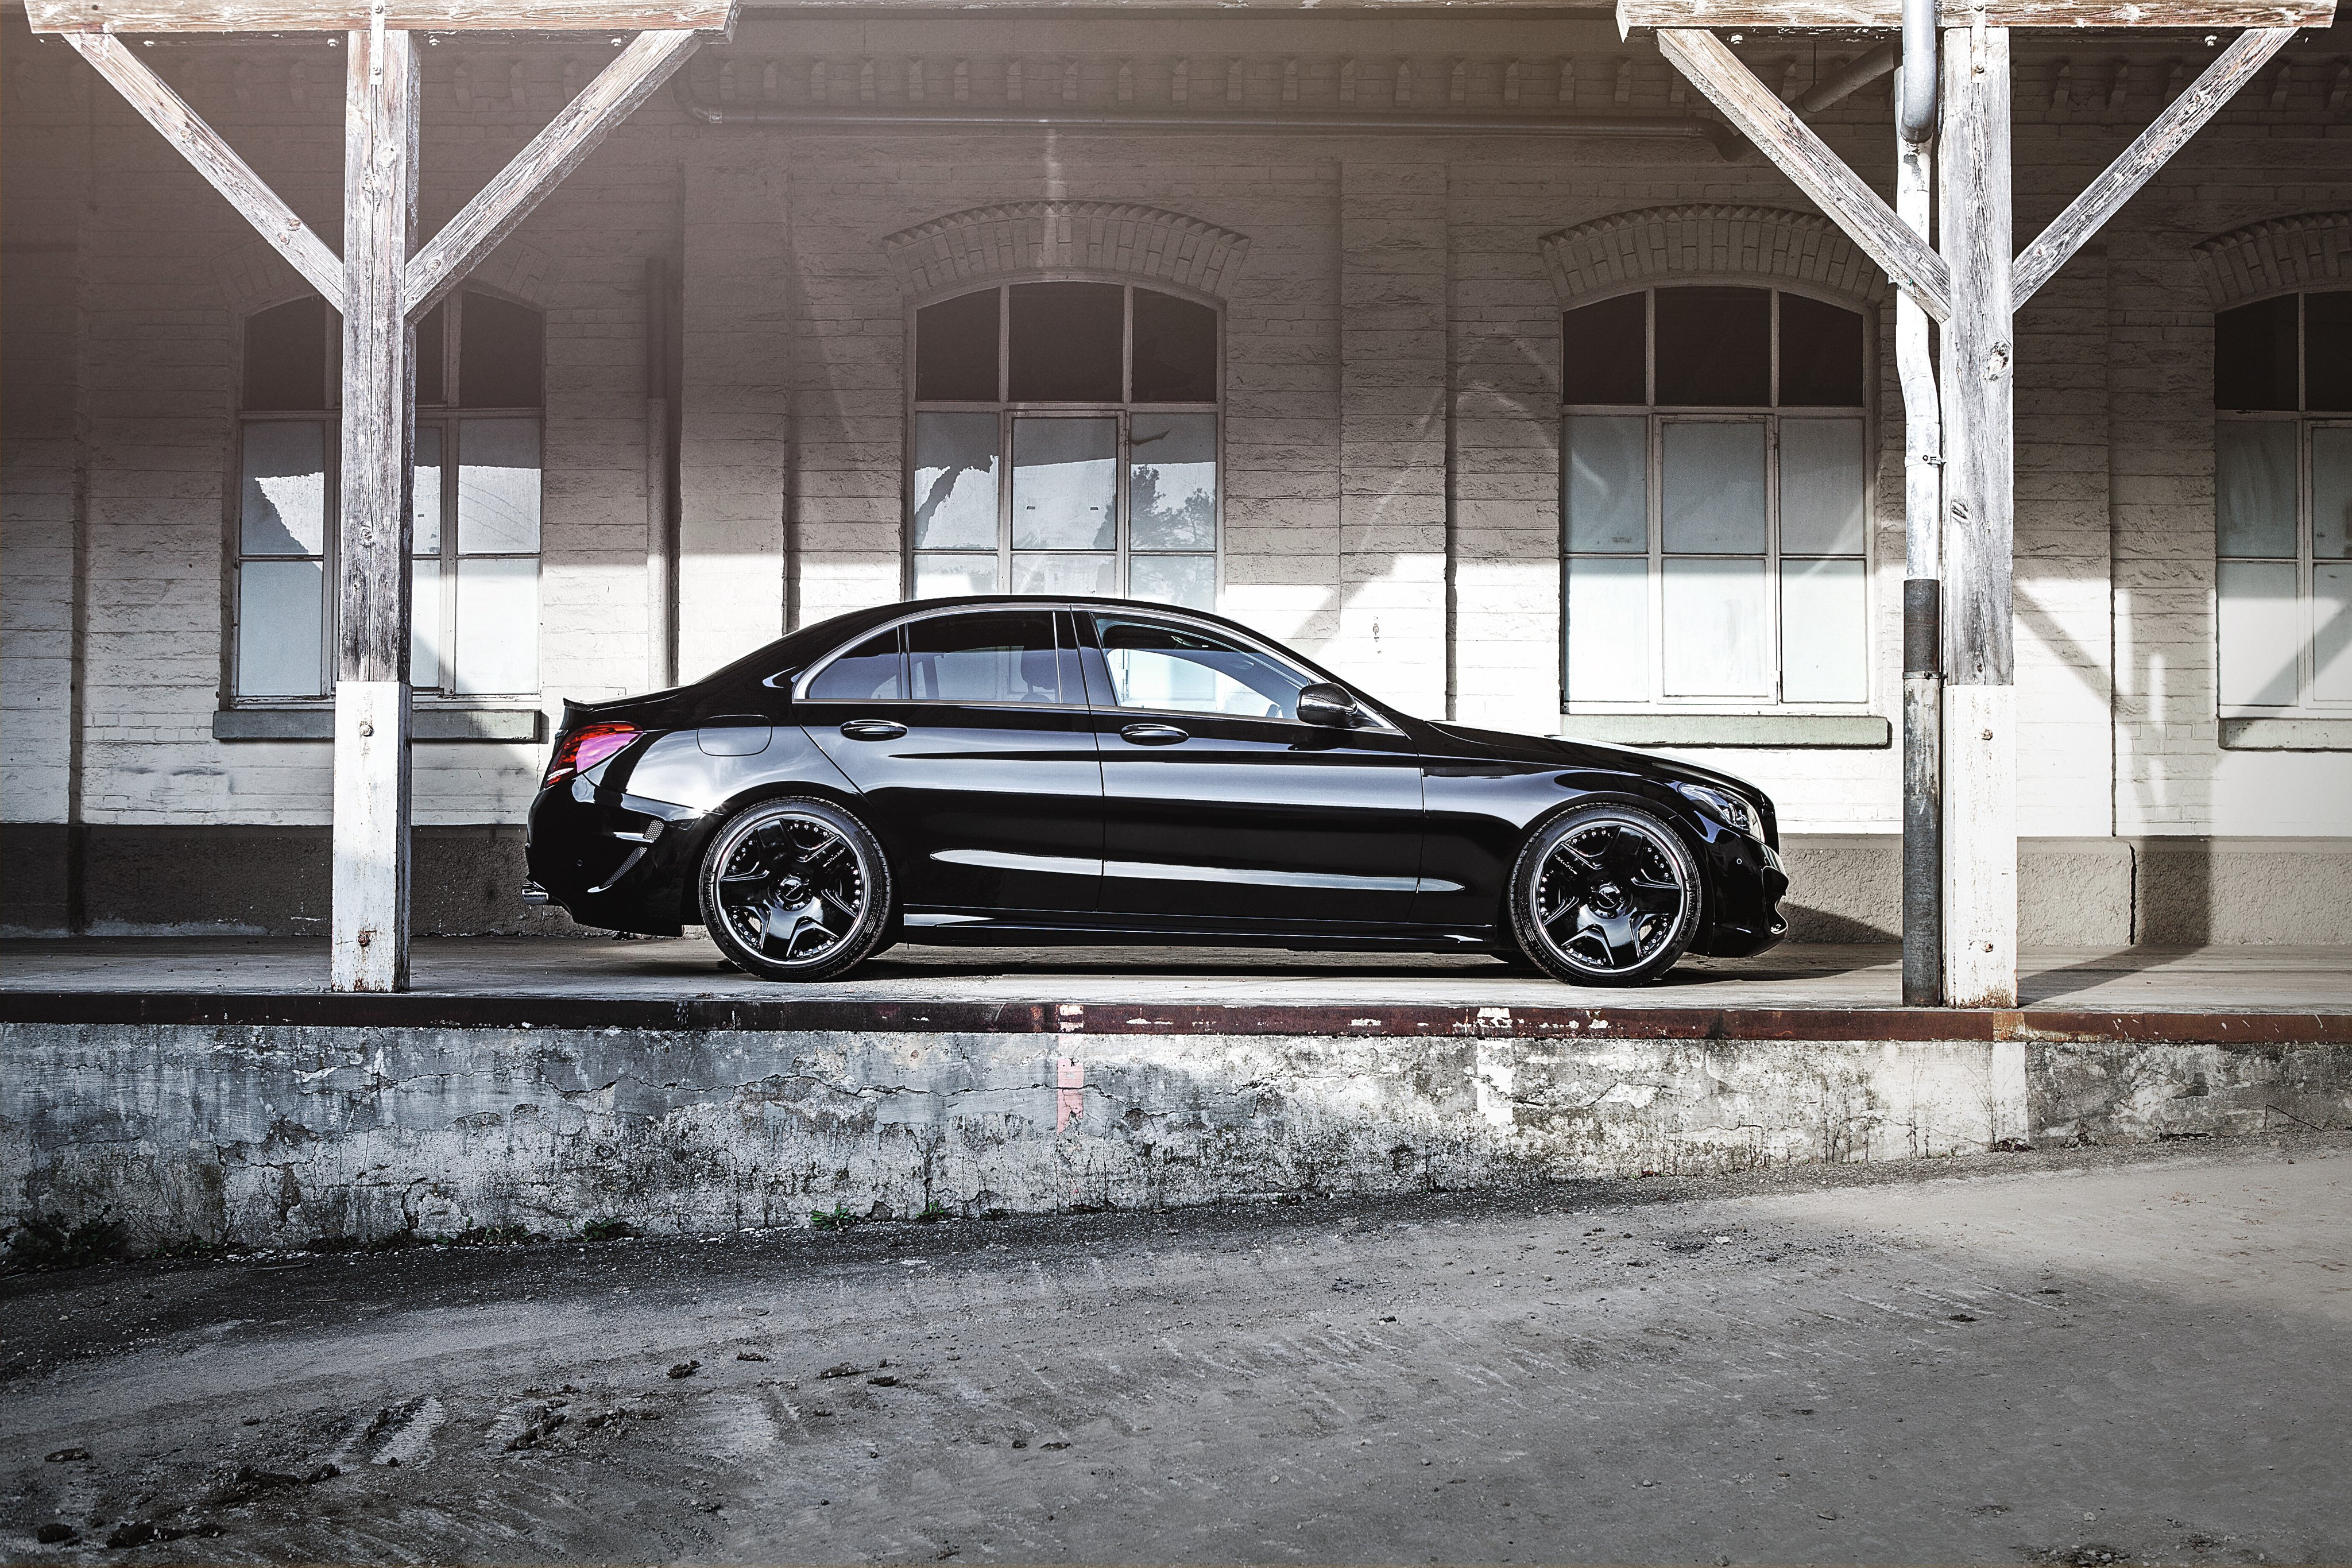 2014 lorinser mercedes benz c klasse w205 tuning wallpaper. Black Bedroom Furniture Sets. Home Design Ideas